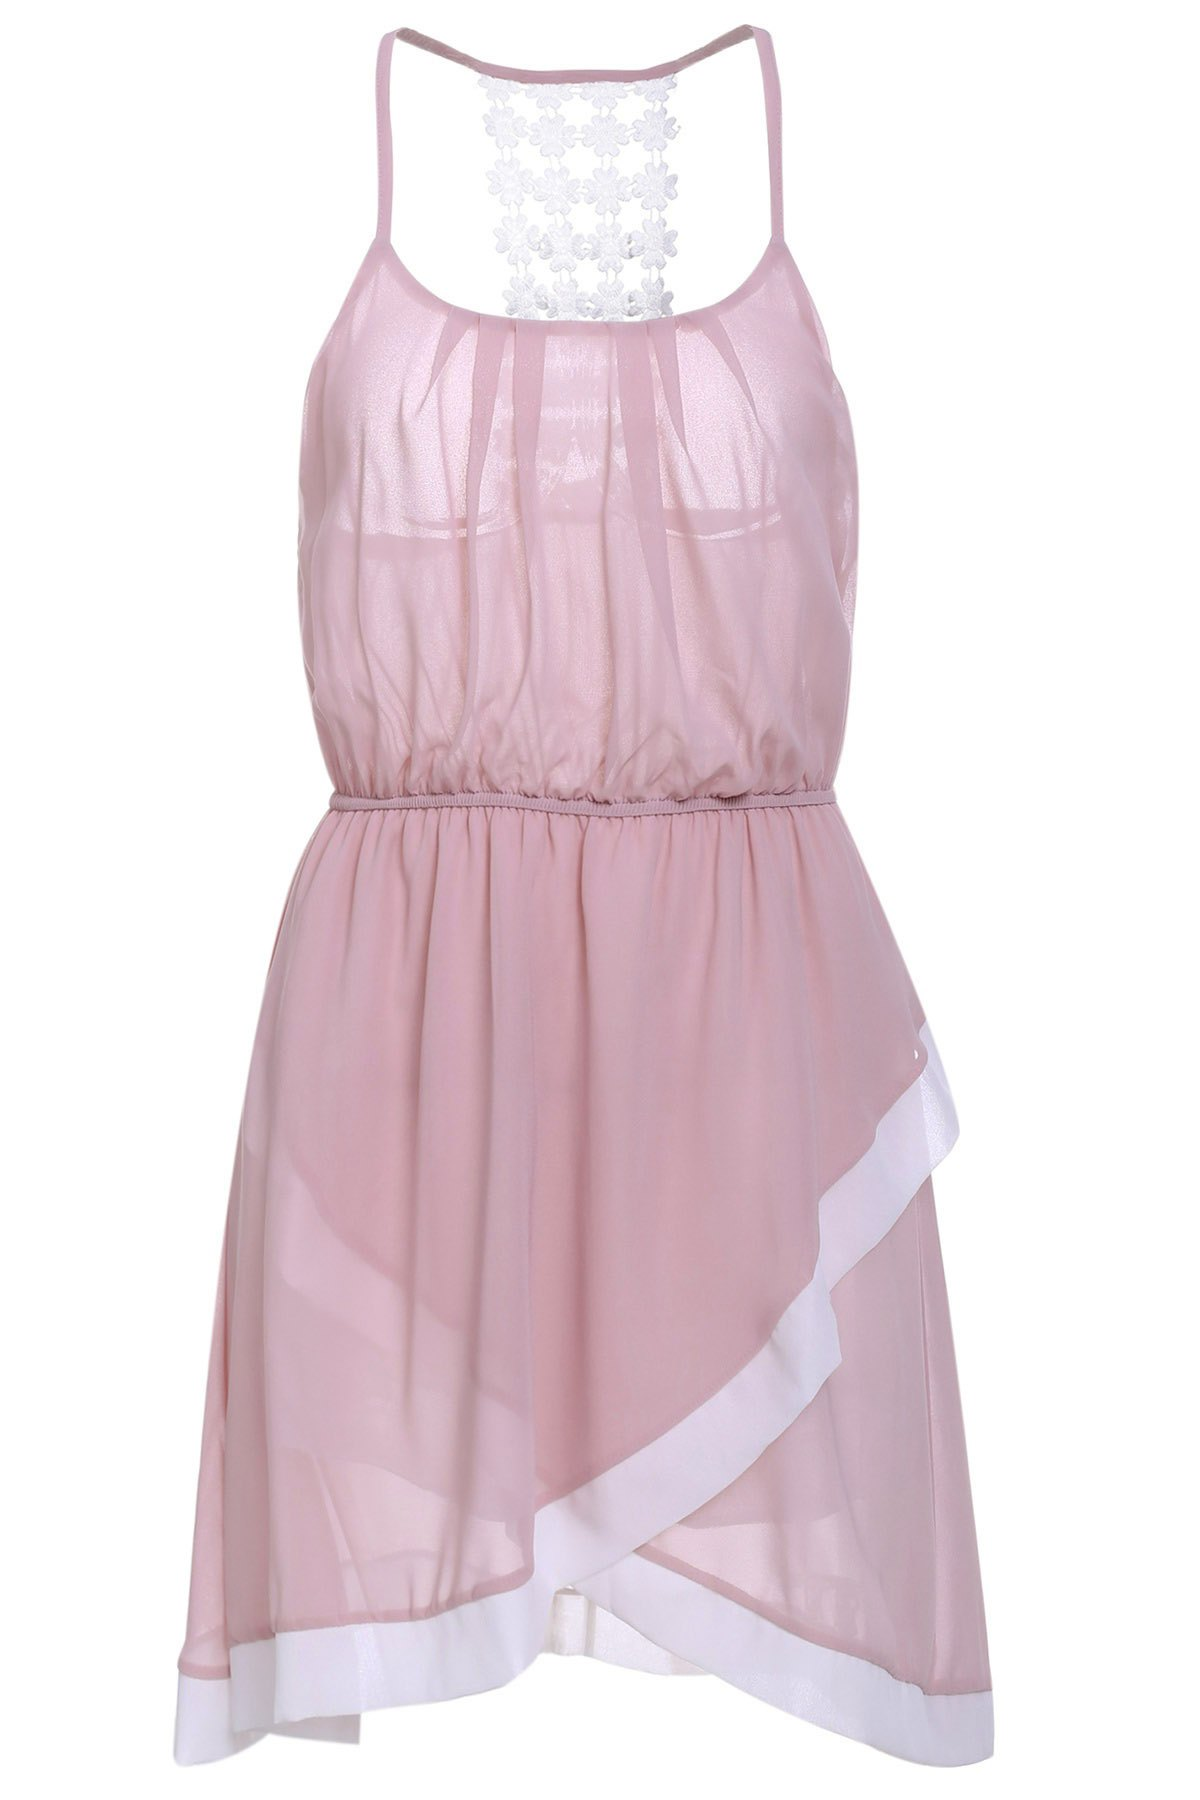 Sweet Spaghetti Strap Asymmetrical Hollow Out Women's Dress - PINK M